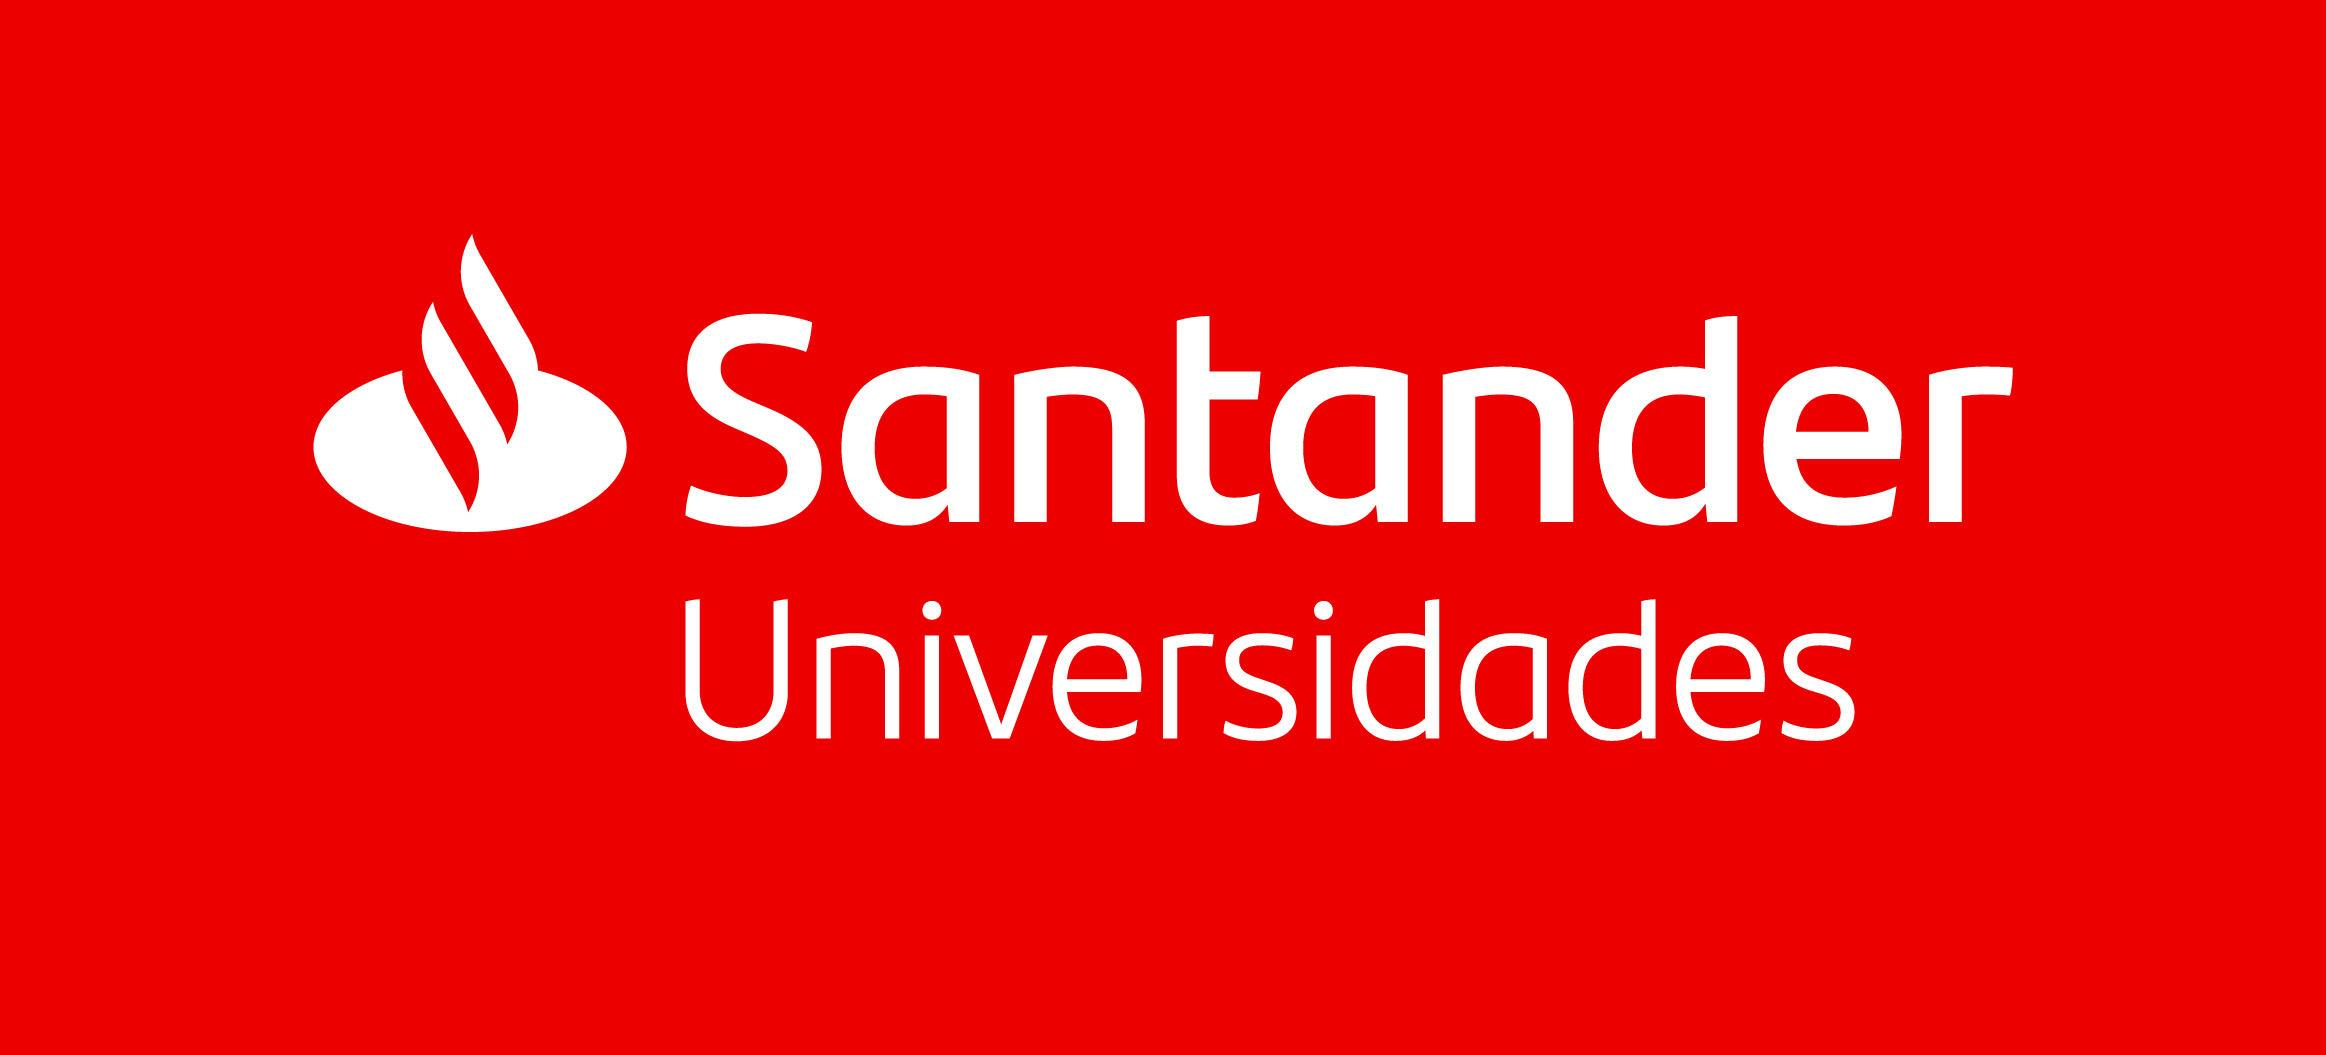 Becas-Santander: Online B2 English Course